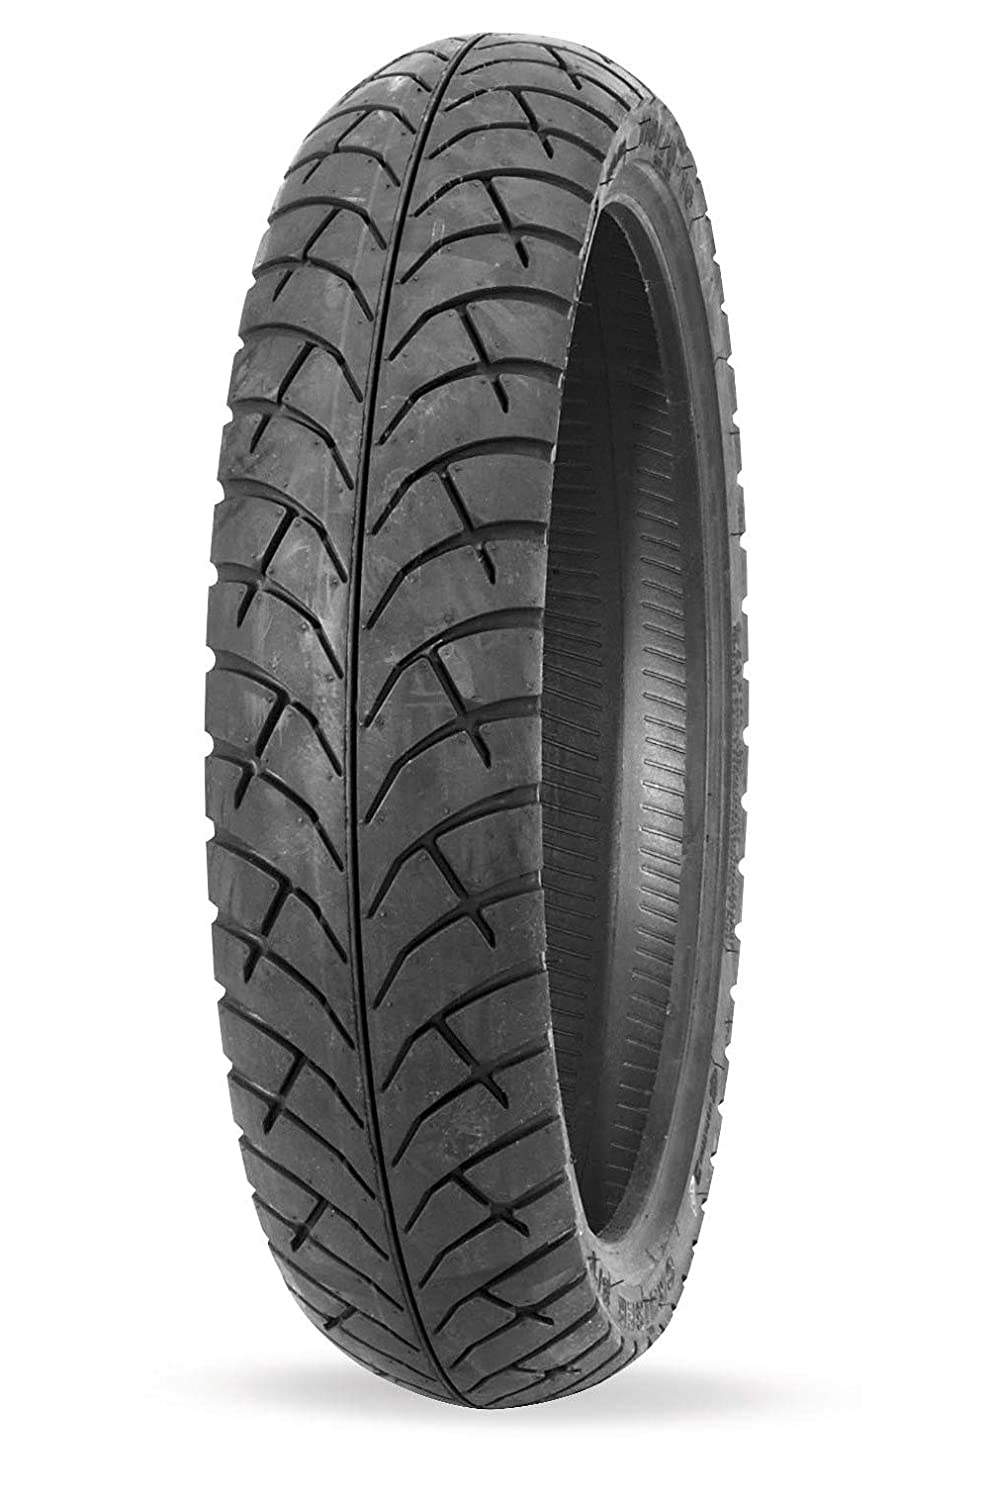 Kenda K761 Dual Sport Tire - Front/Rear - 120/90-17 , Position: Front/Rear, Tire Size: 120/90-17, Rim Size: 17, Tire Ply: 4, Load Rating: 64, Speed Rating: H, Tire Type: Dual Sport, Tire Construction: Bias, Tire Application: All-Terrain 04761791B1